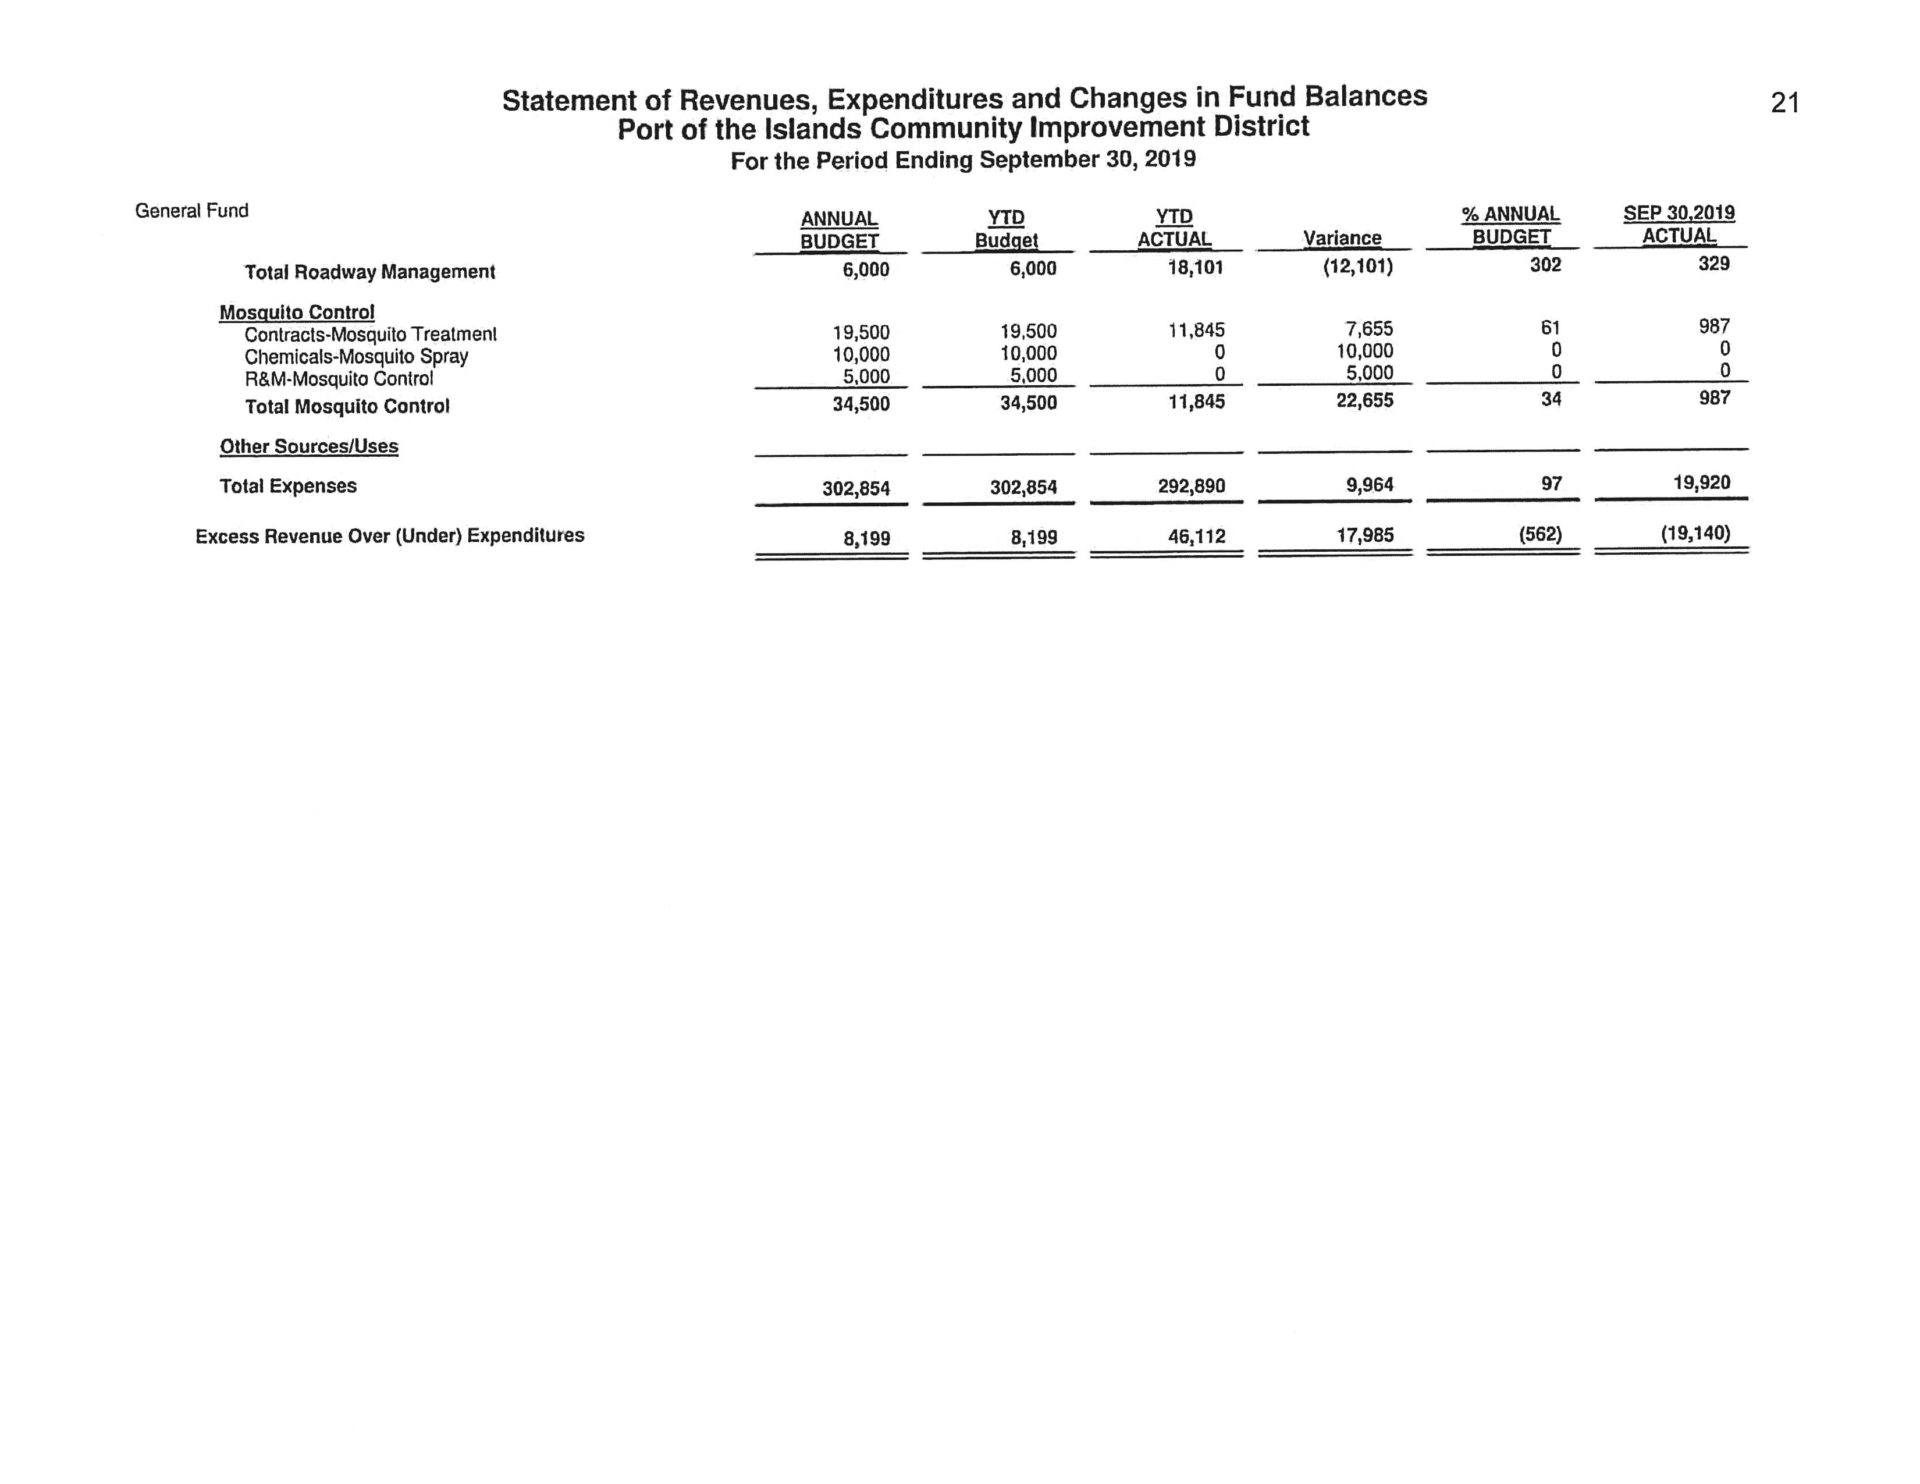 Statement of Revenues Expenditures and Changes in Fund Balance 9-2019